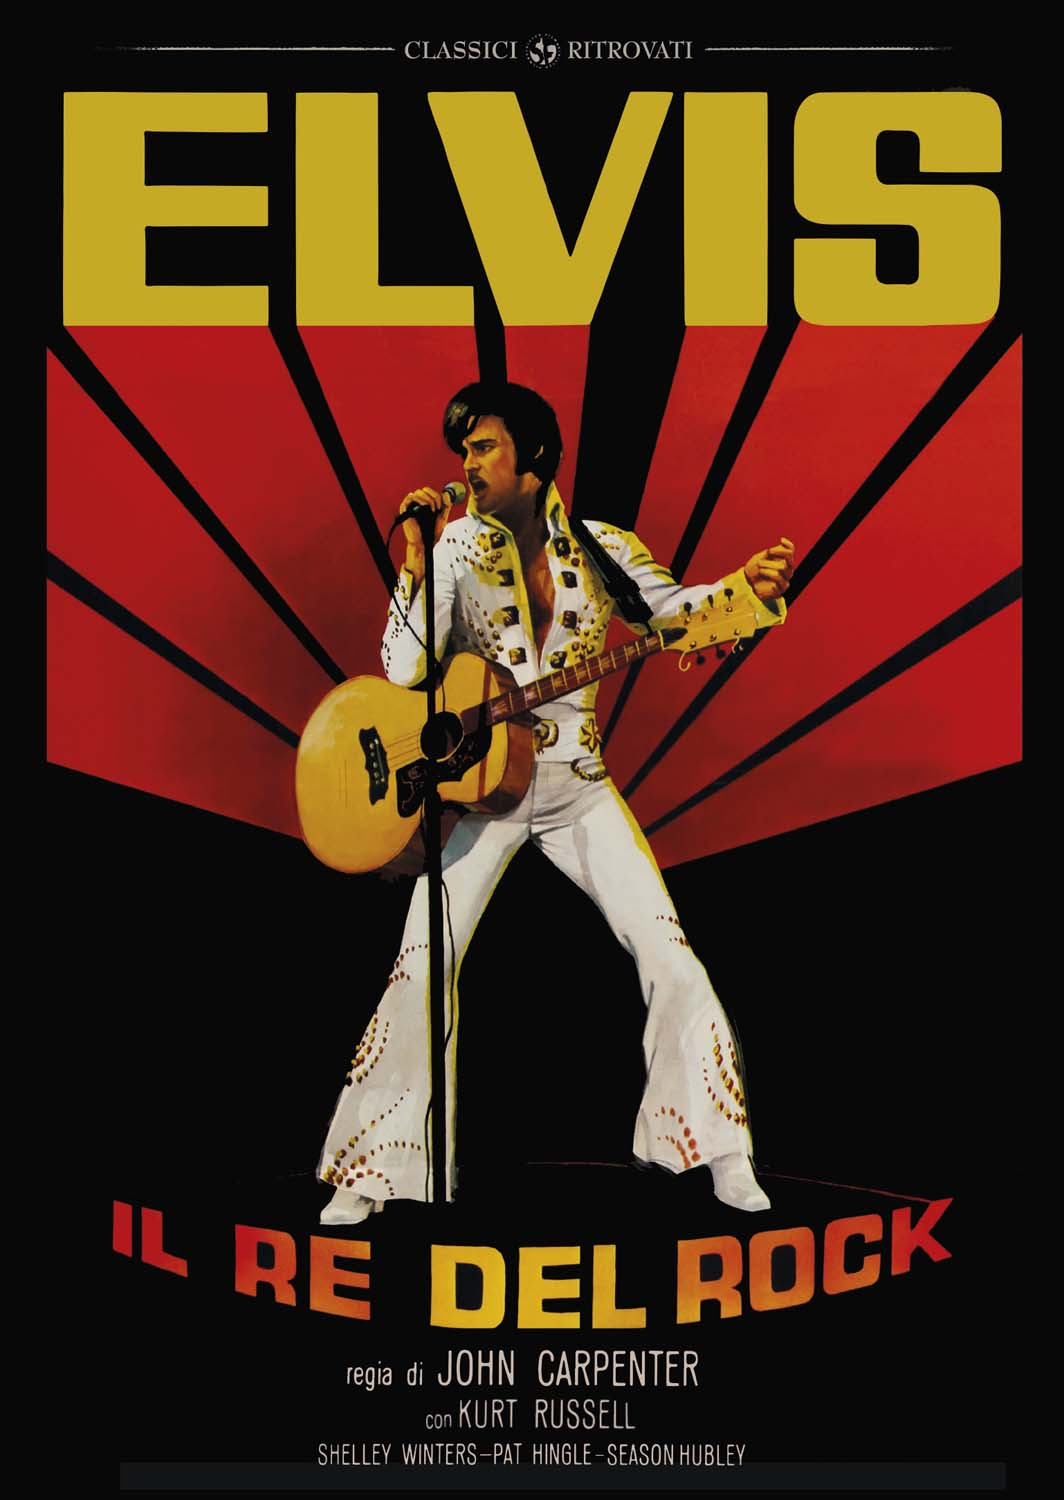 Elvis - Il re del rock (1979)